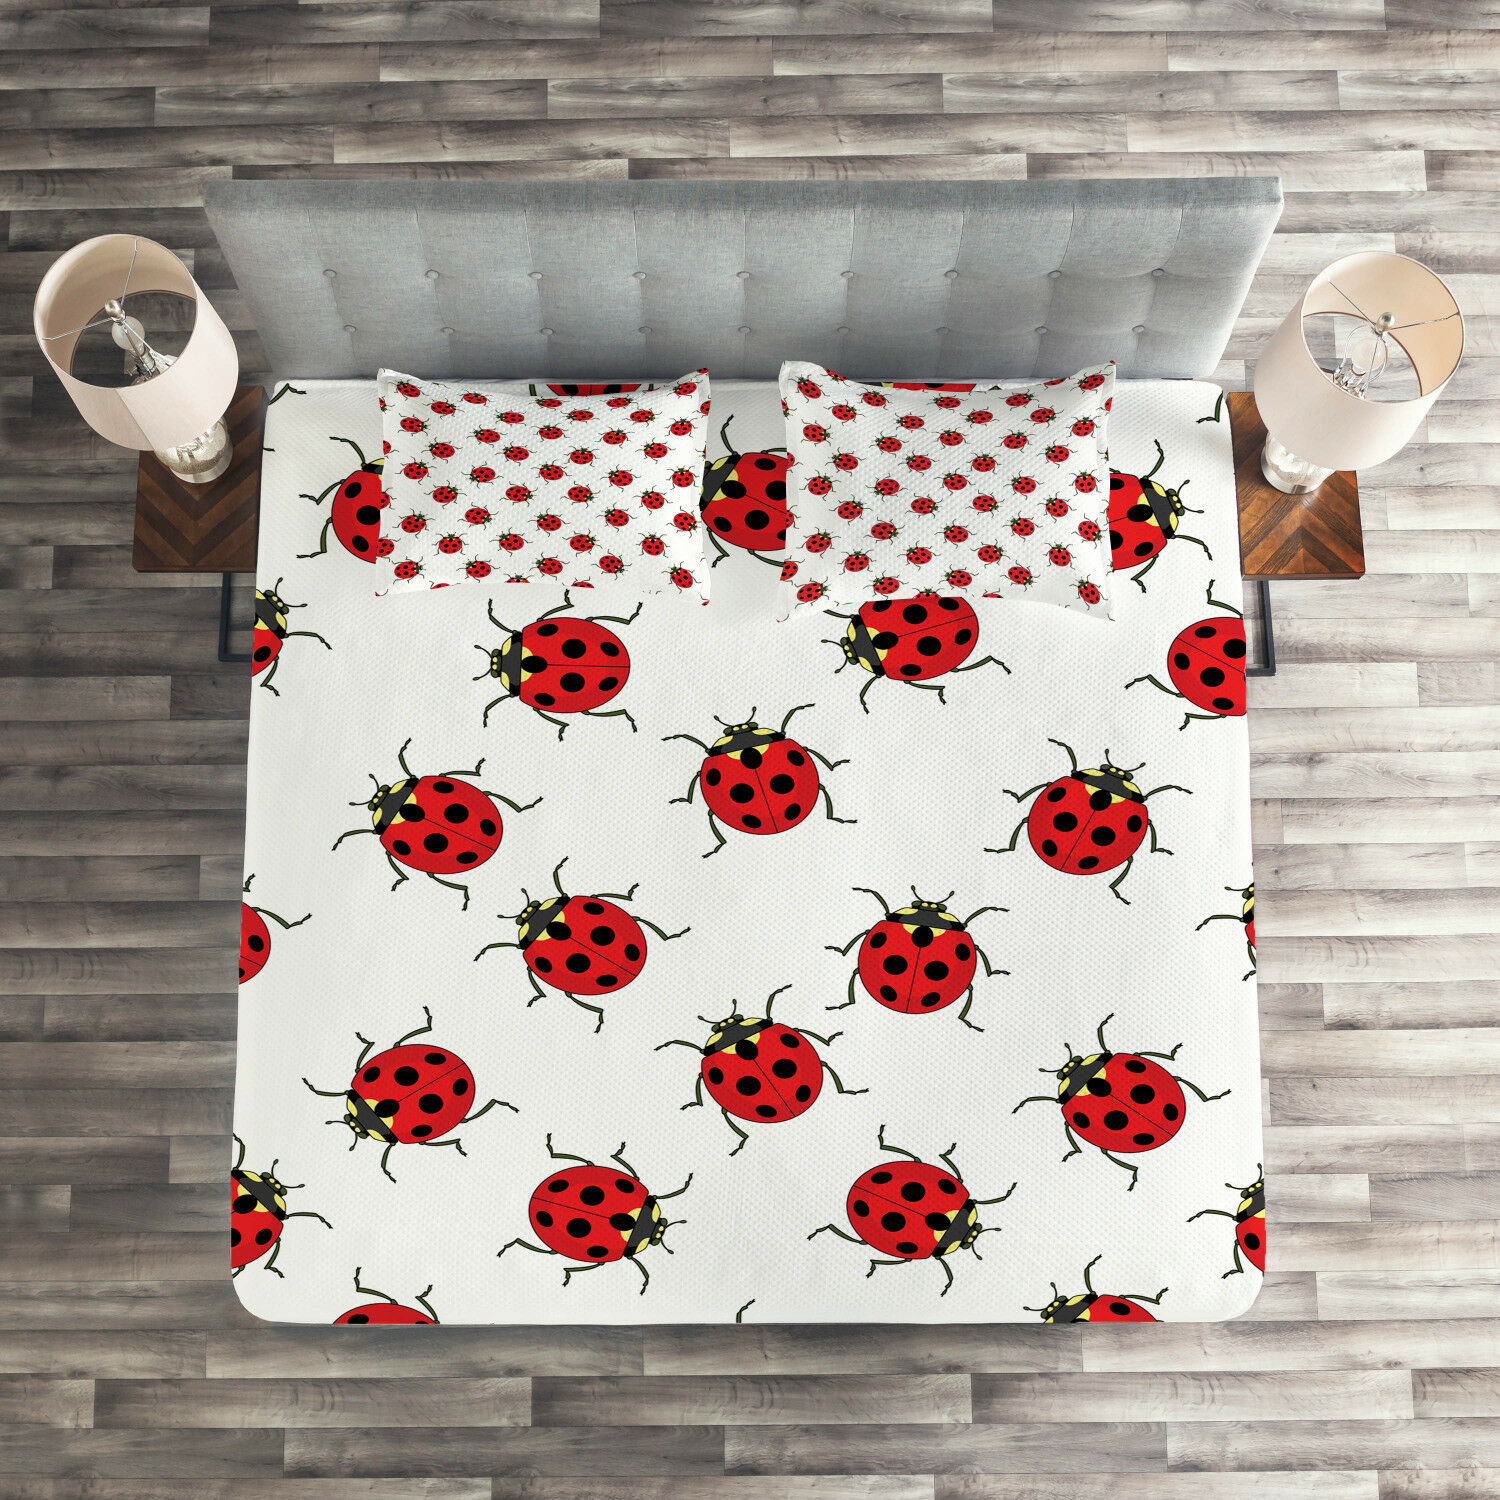 Kids Quilted Coverlet & Pillow Shams Set, Cute Ladybugs Patterns Print